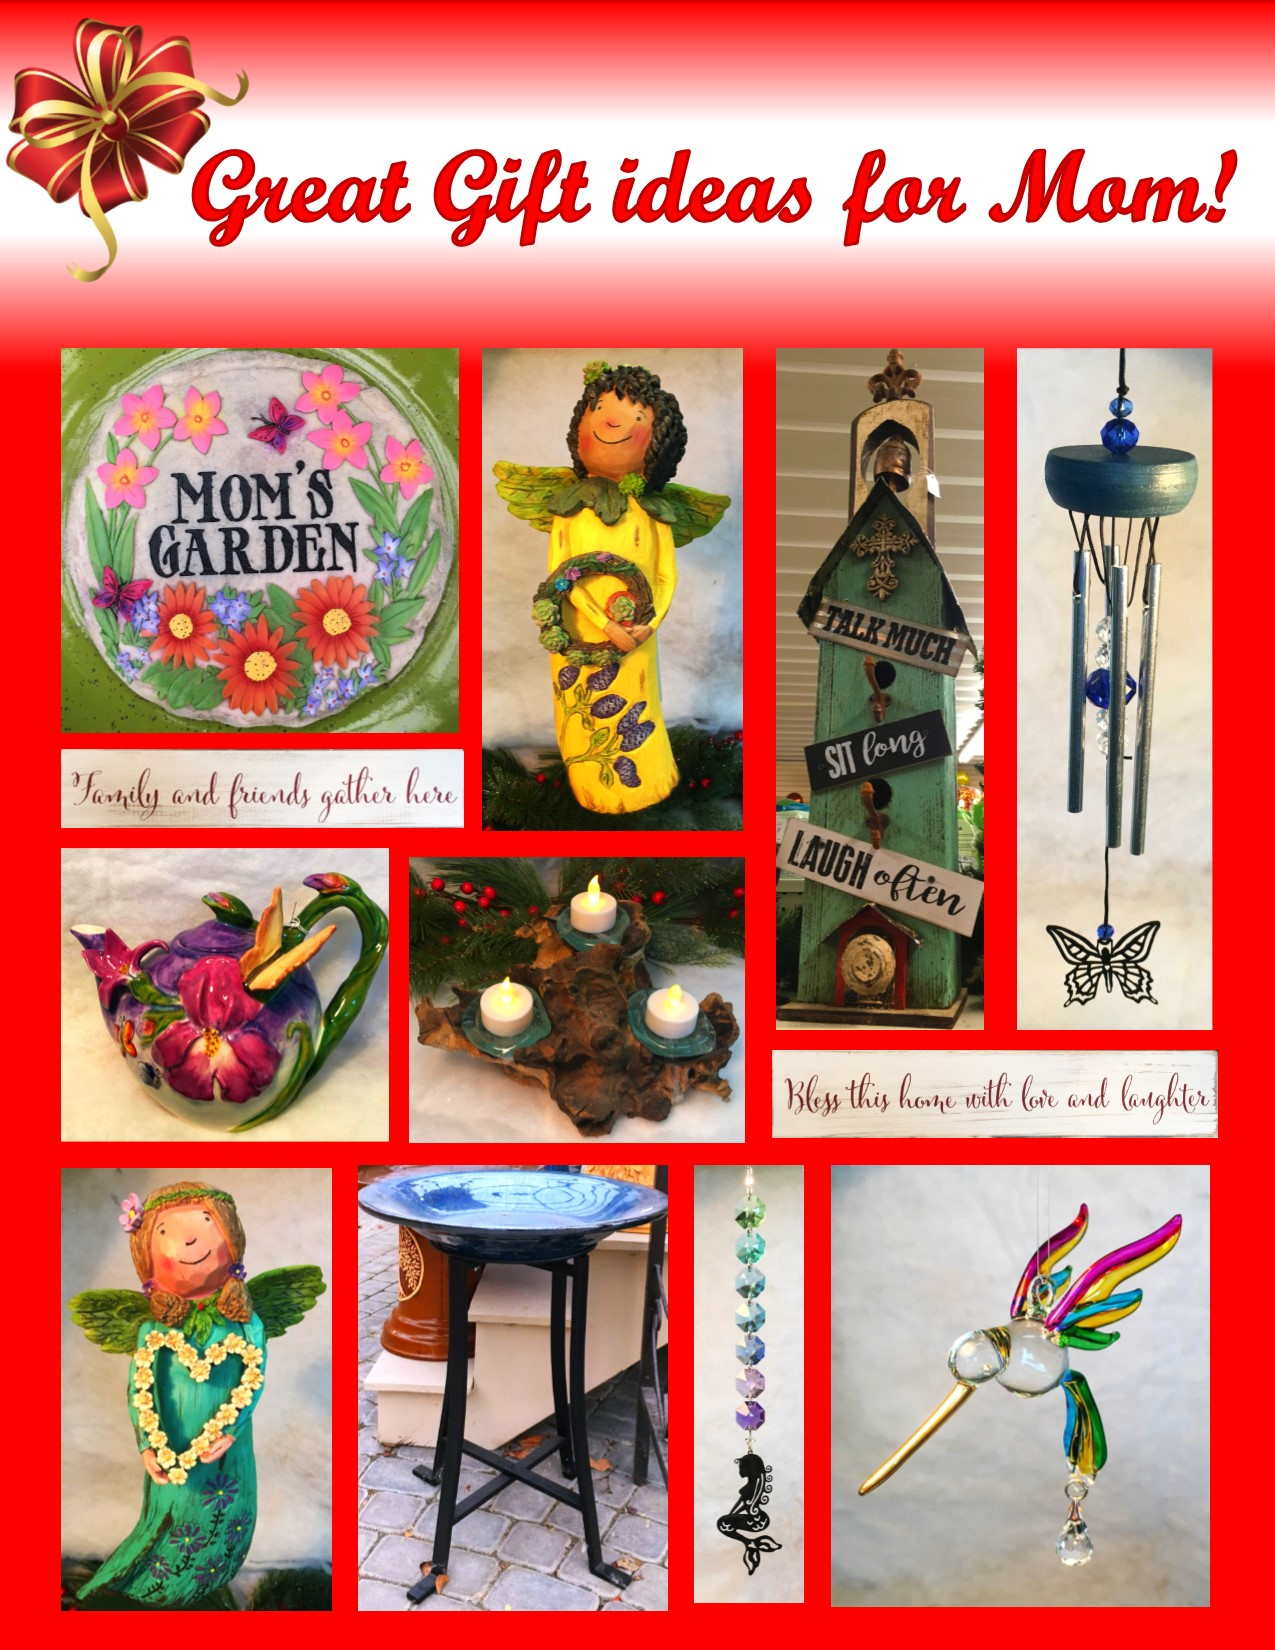 Gifts for Mom1